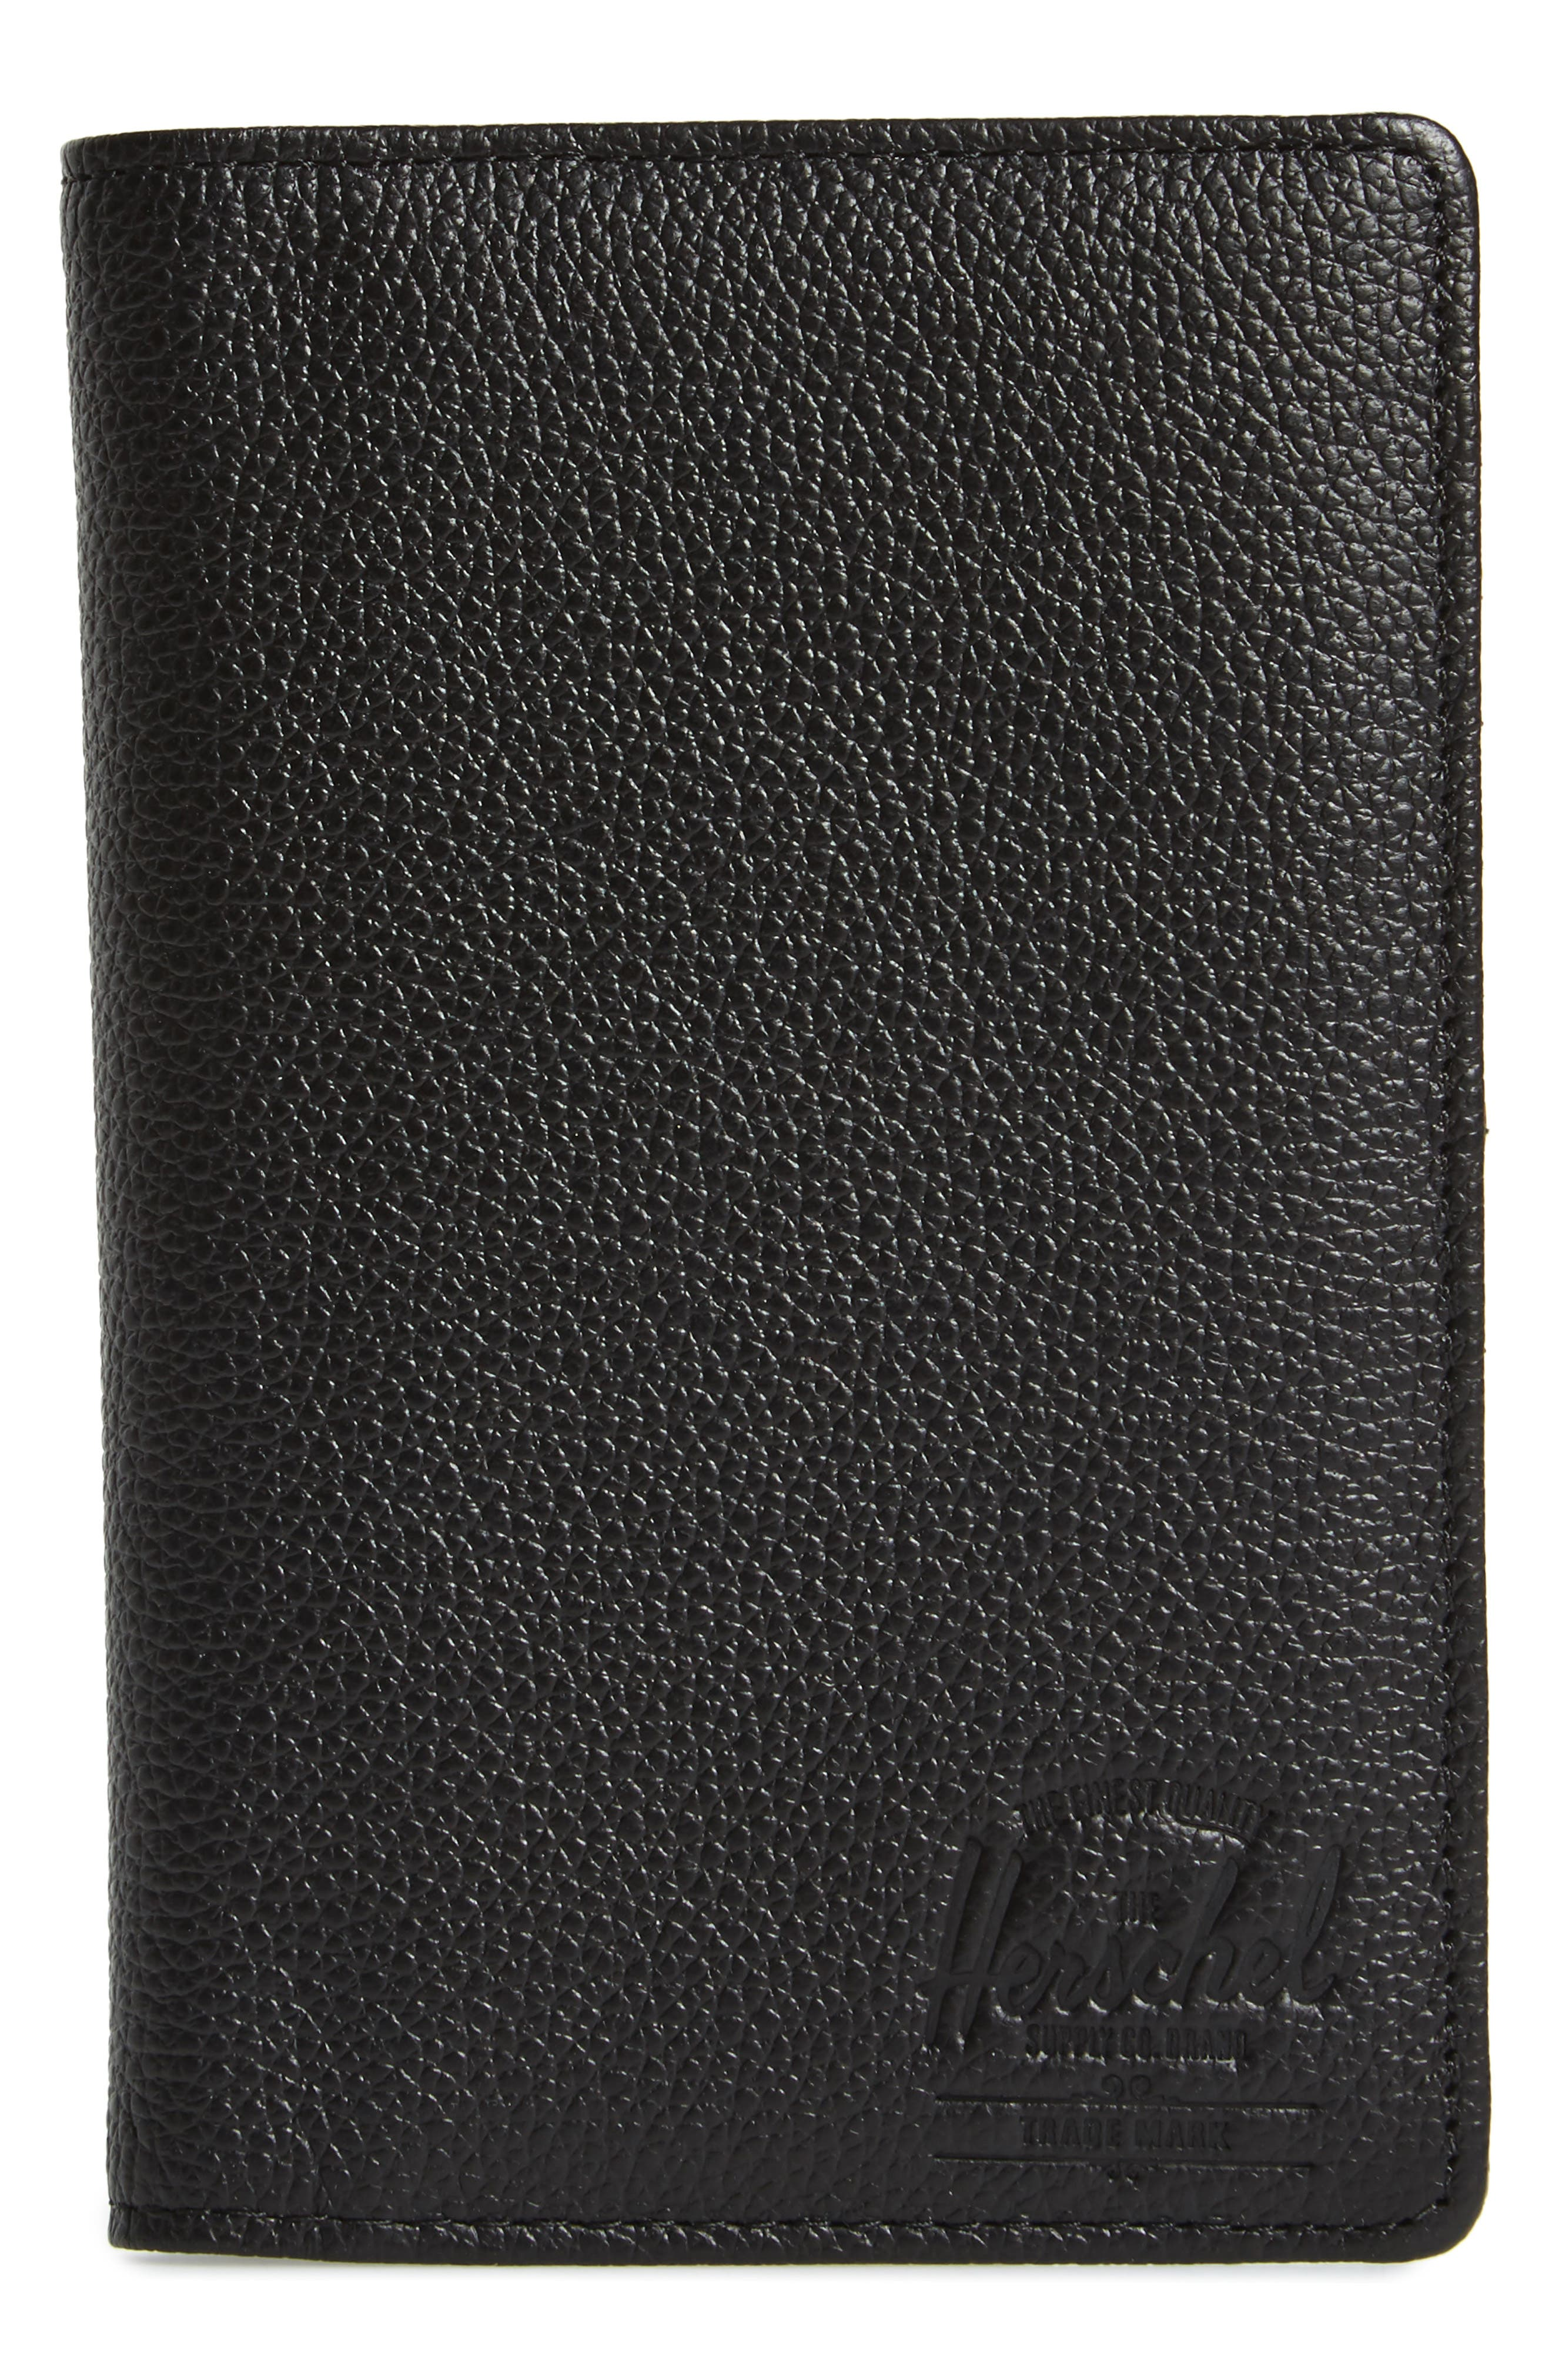 Herschel Supply Co. Tile Search Slim Vertical Leather Wallet